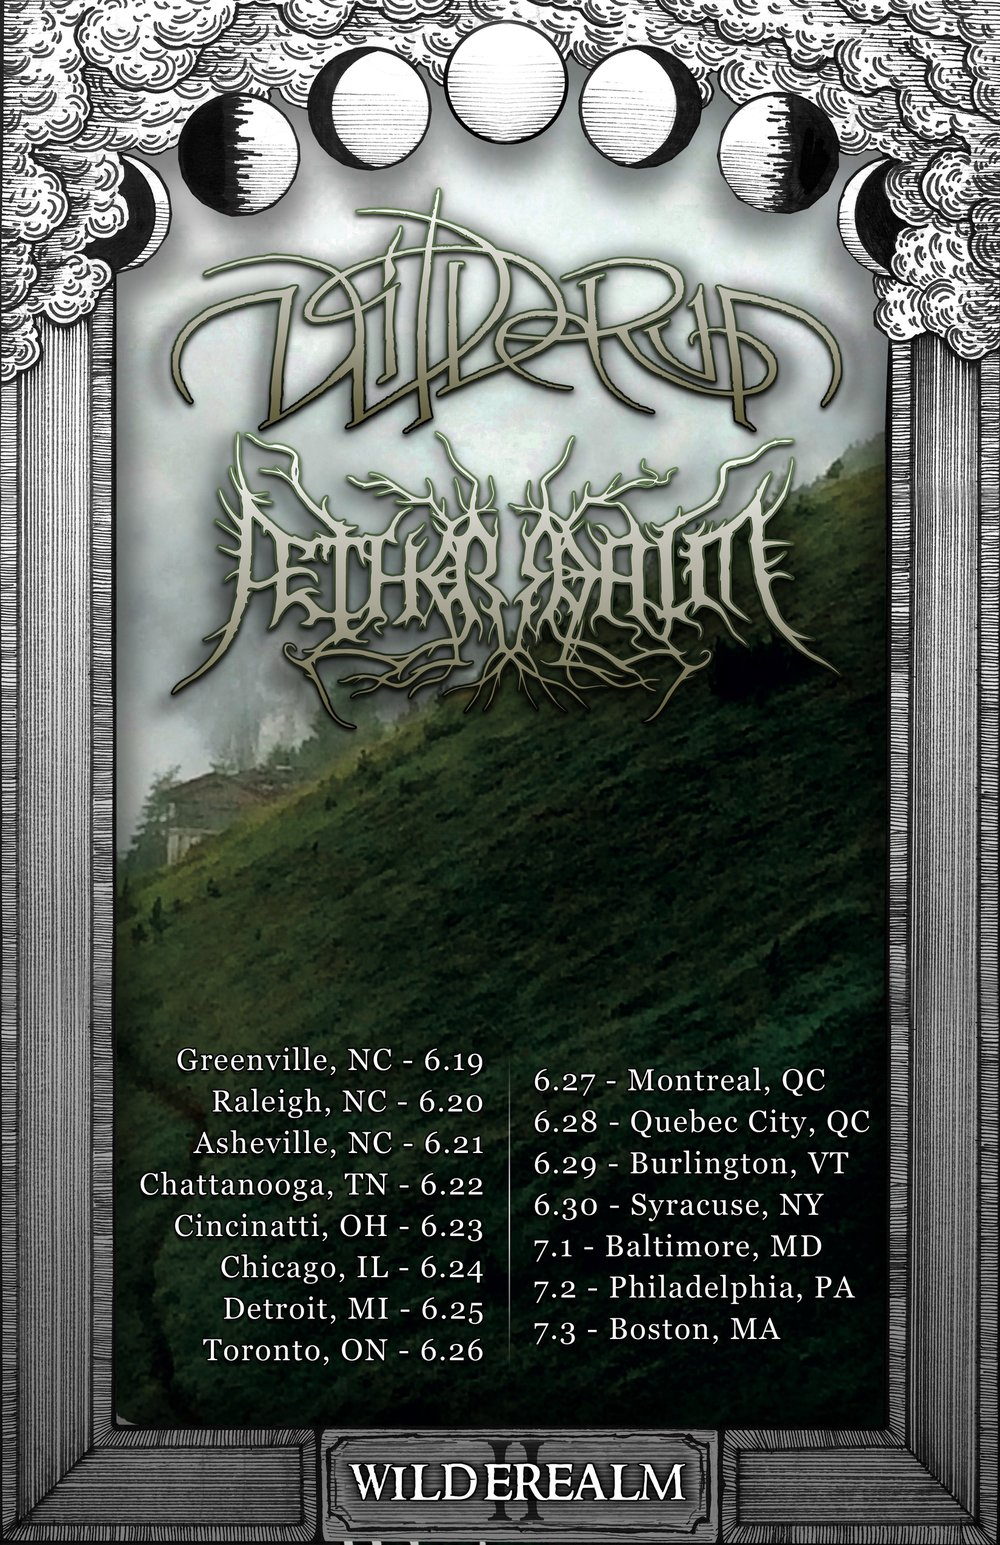 The WildeRealm II Tour